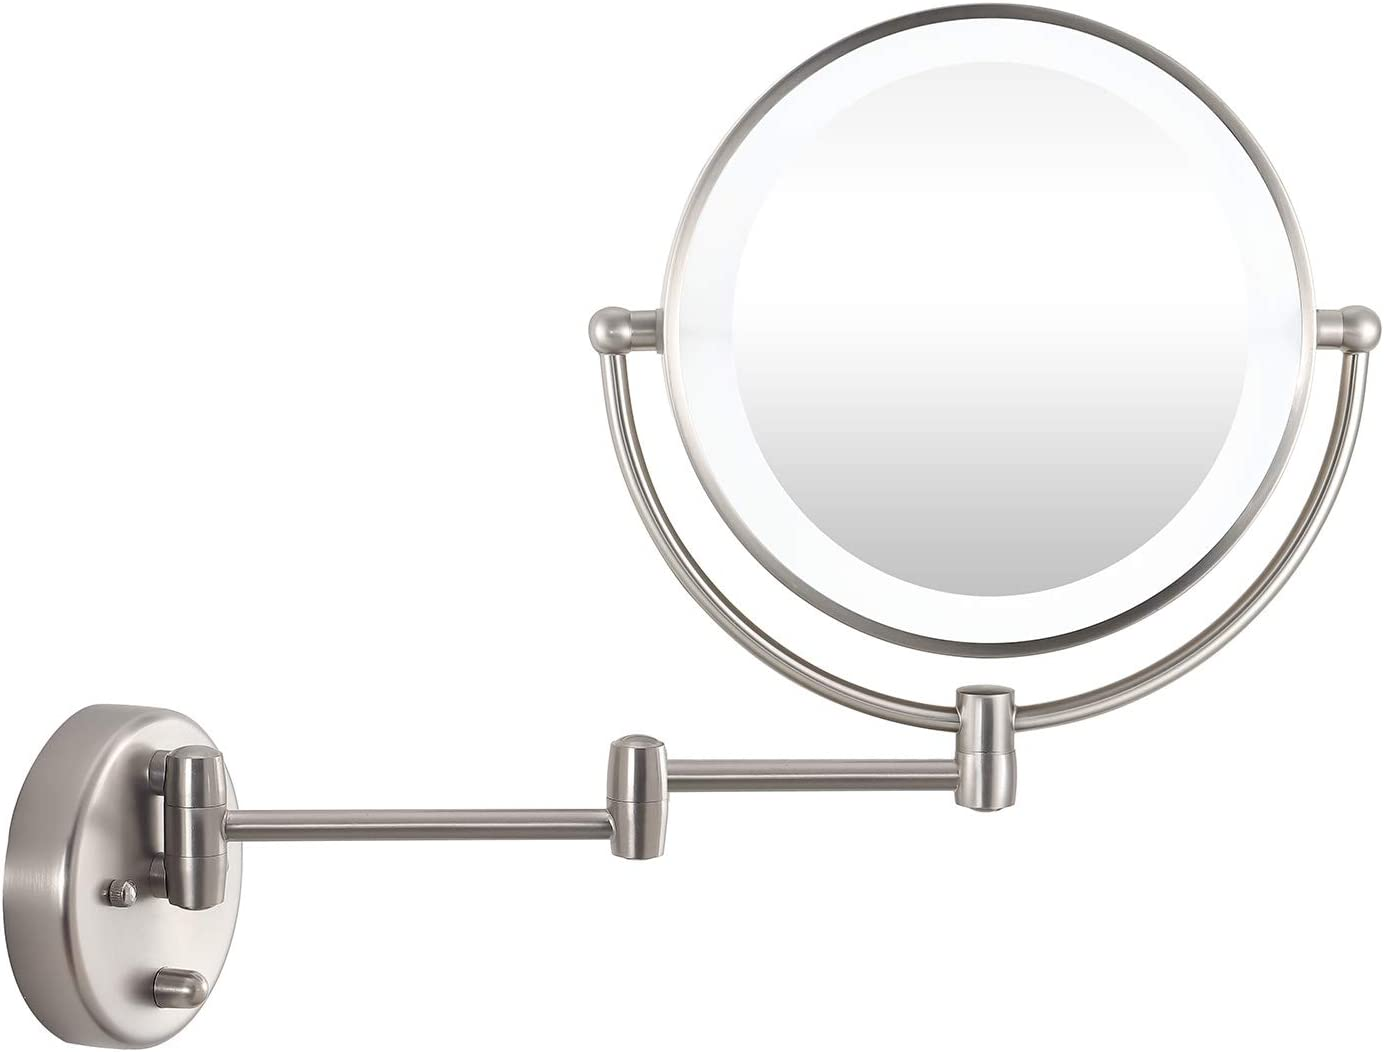 """WINGBO 9"""" LED Lighted Makeup Mirror, Swing Arm Wall Mounted Shaving Mirror Lamp with Swivel Double Sided 1x 8X Magnification for Vanity Bathroom Bedroom, Silvery"""